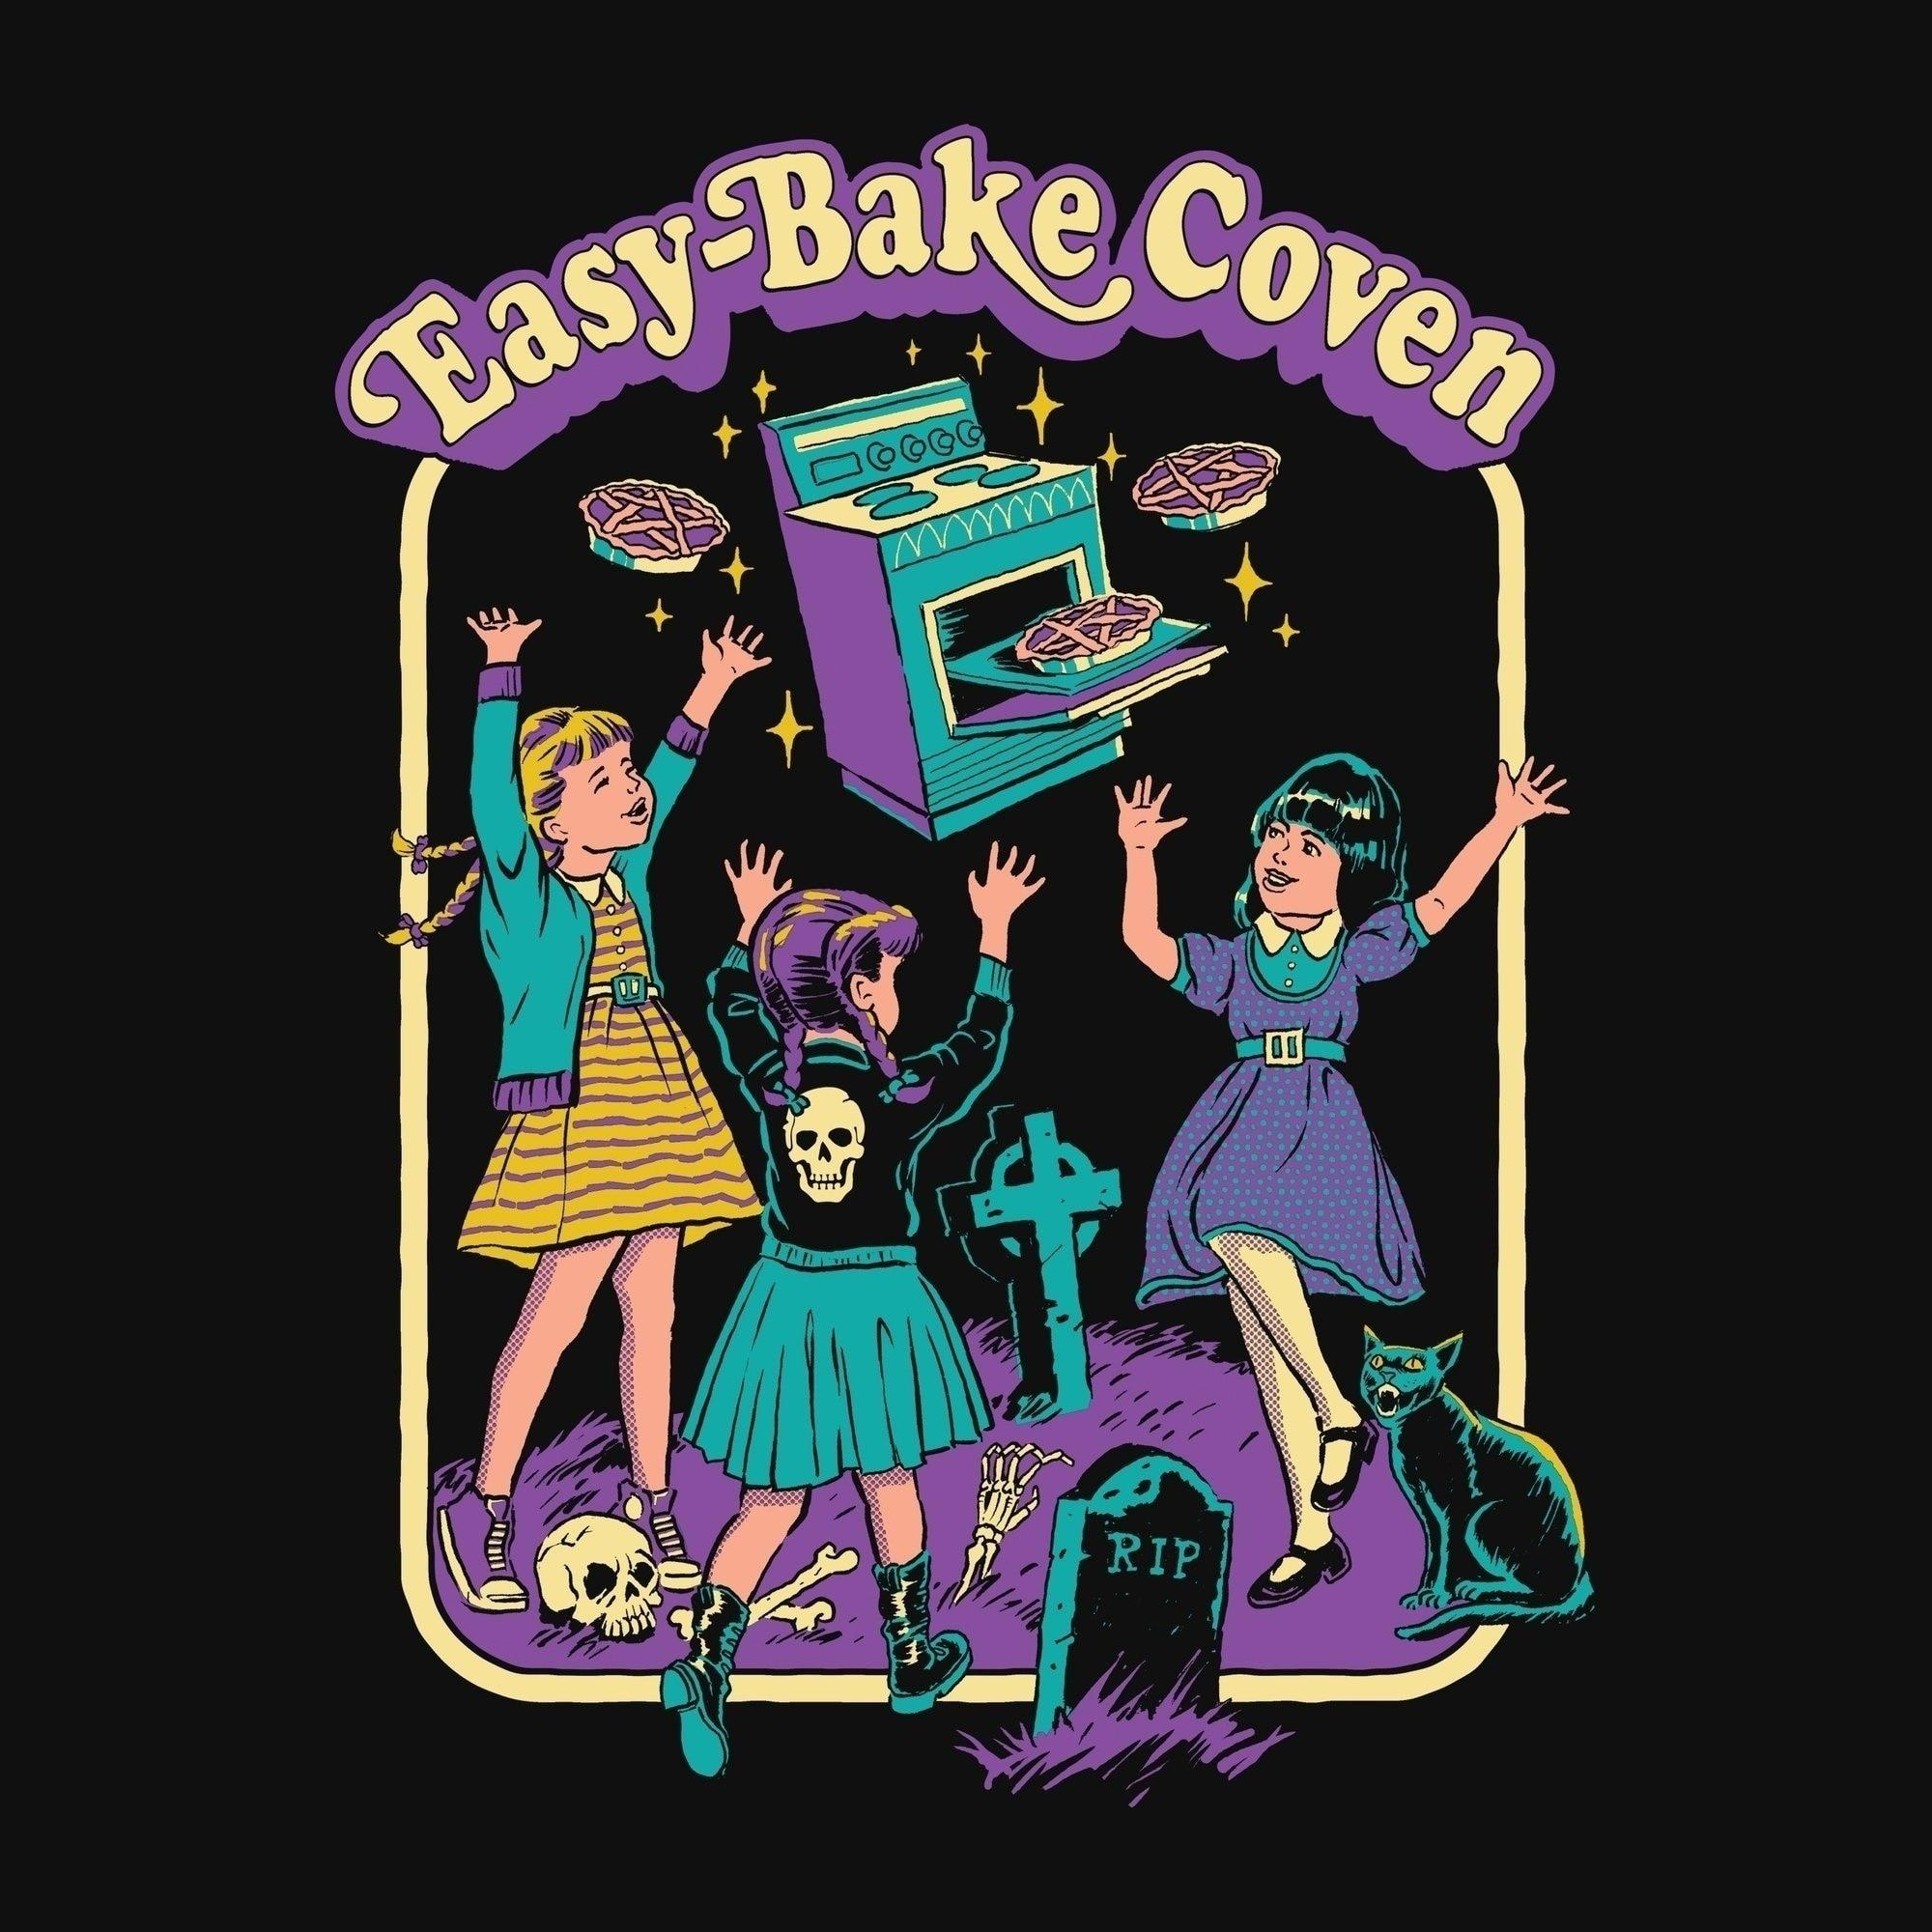 hahayule j1pcs Black Tshirt Easy Bake Coven Illustration T-Shirt Unisex  Gothic Grunge Printed Tee Witch Shirt Halloween Clothing – Gothic and Witch